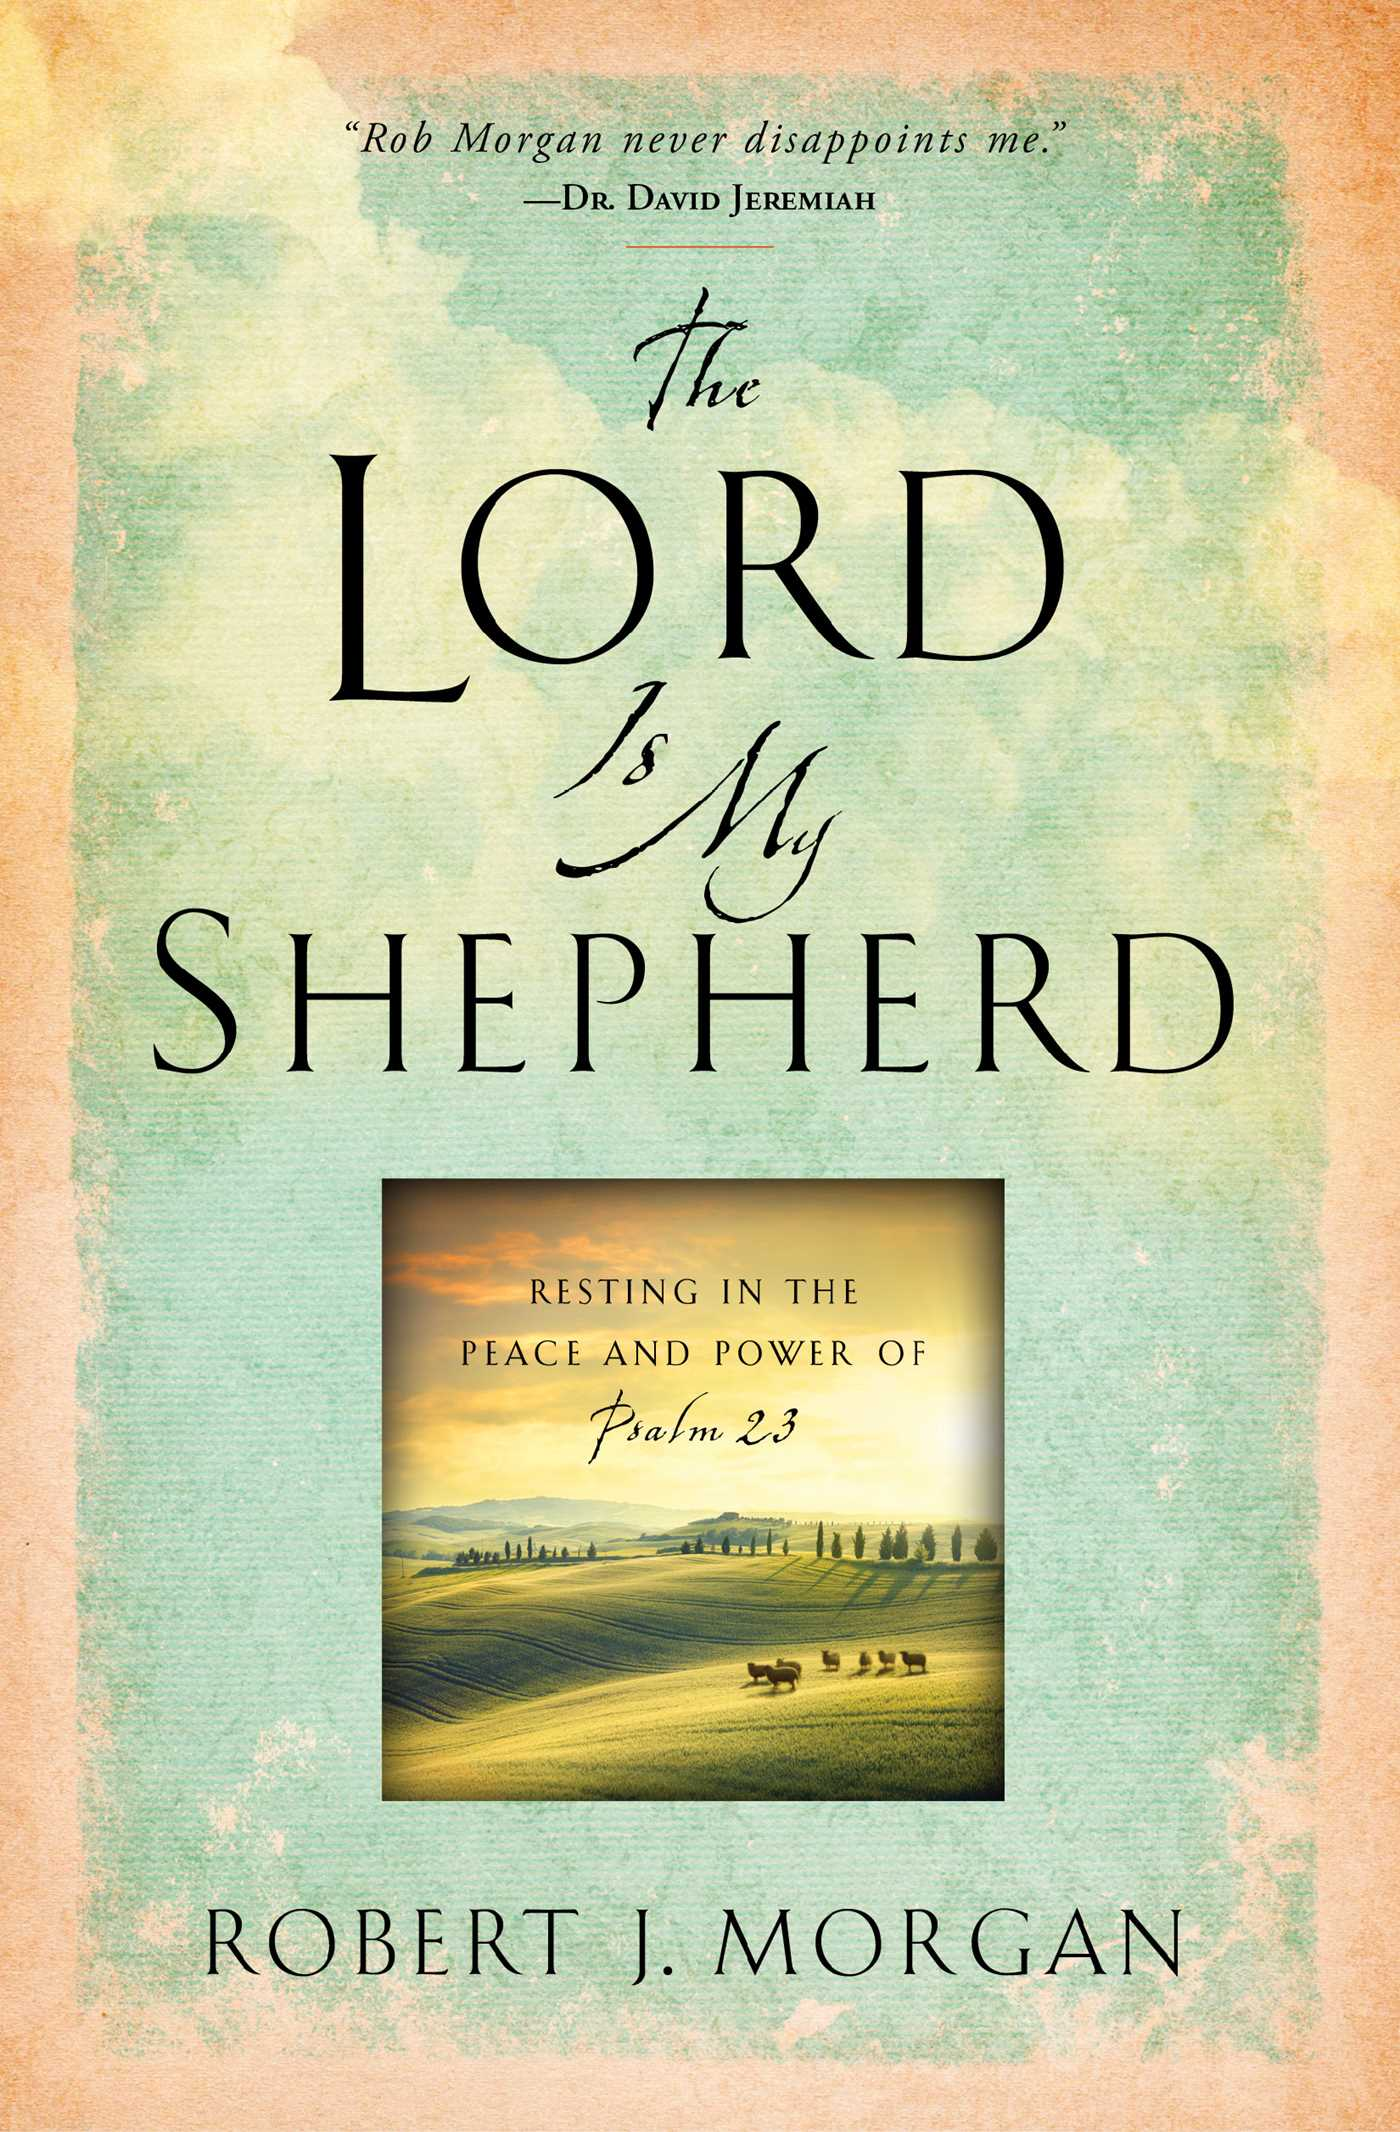 The lord is my shepherd 9781451669169 hr